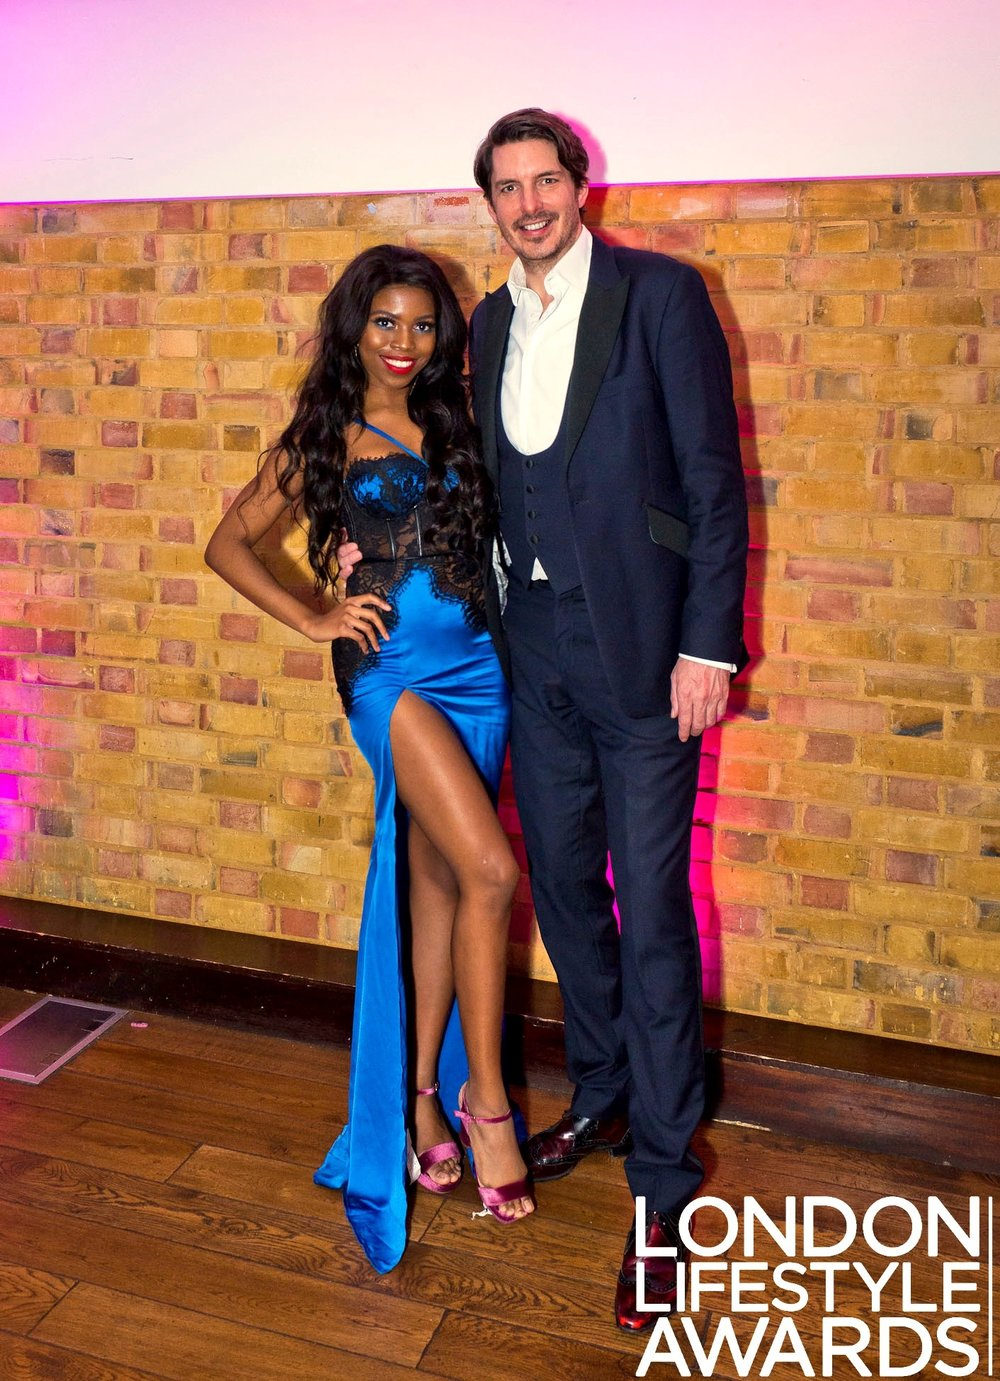 Sassy Fashion Rudy & London Lifestyle Awards CEO Jason Gale